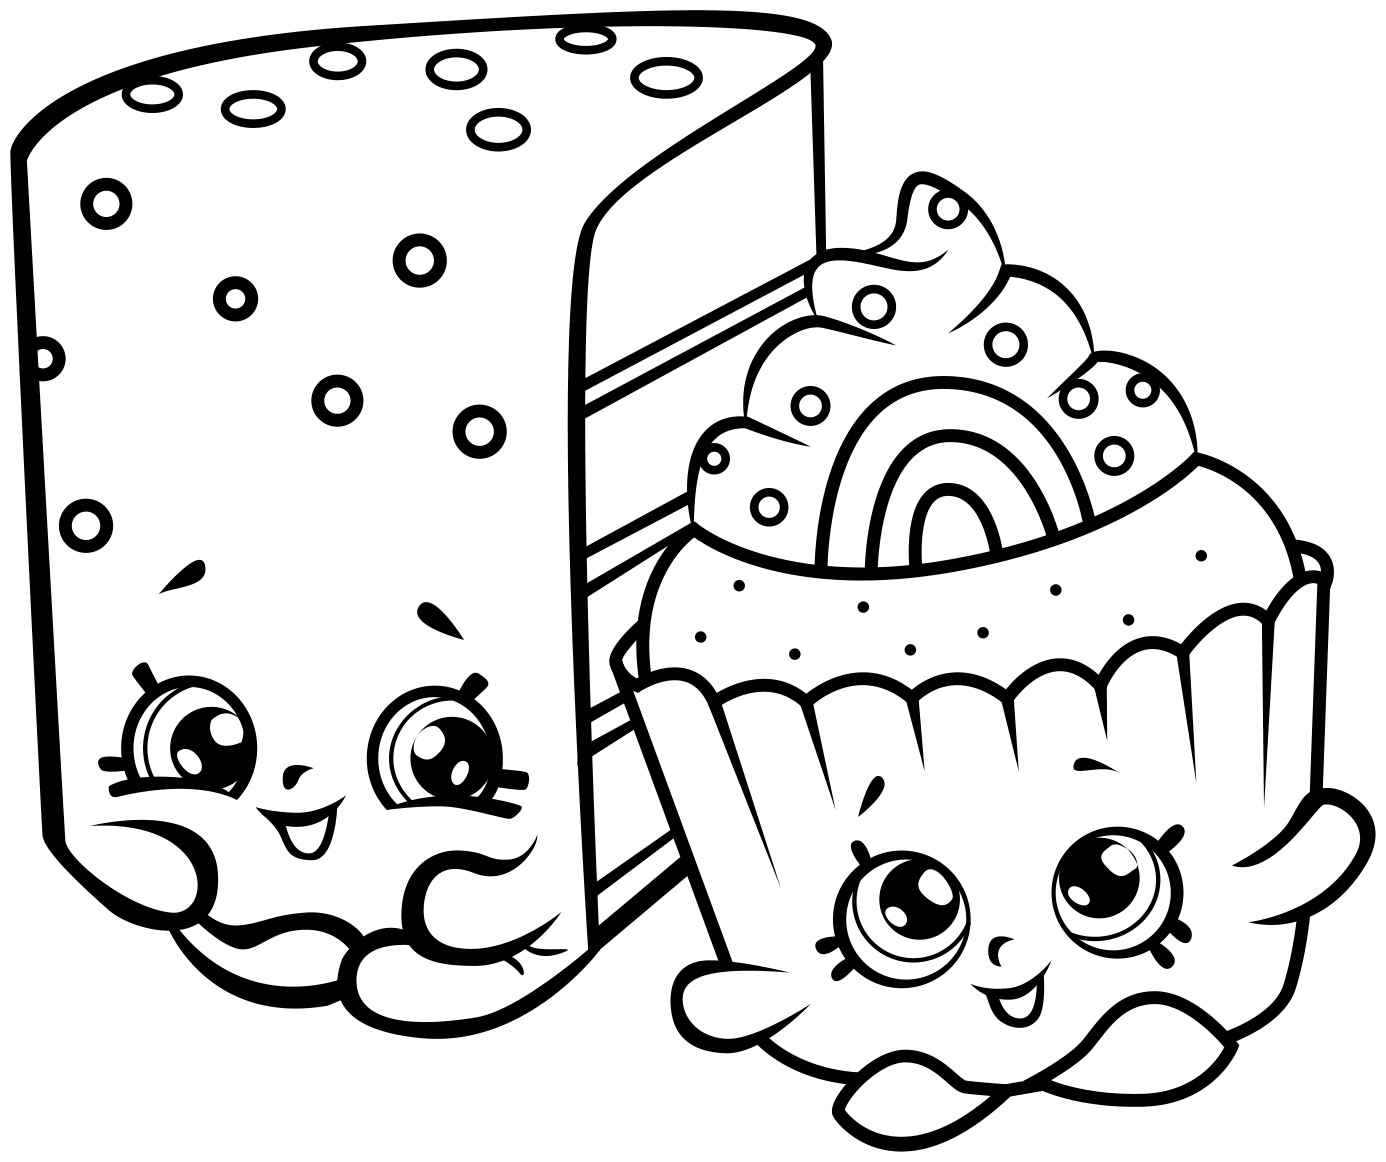 Printable Coloring Pages for Shopkins Free Shopkins Coloring Pages Collection Of Shopkins Coloring Pages 45 Download